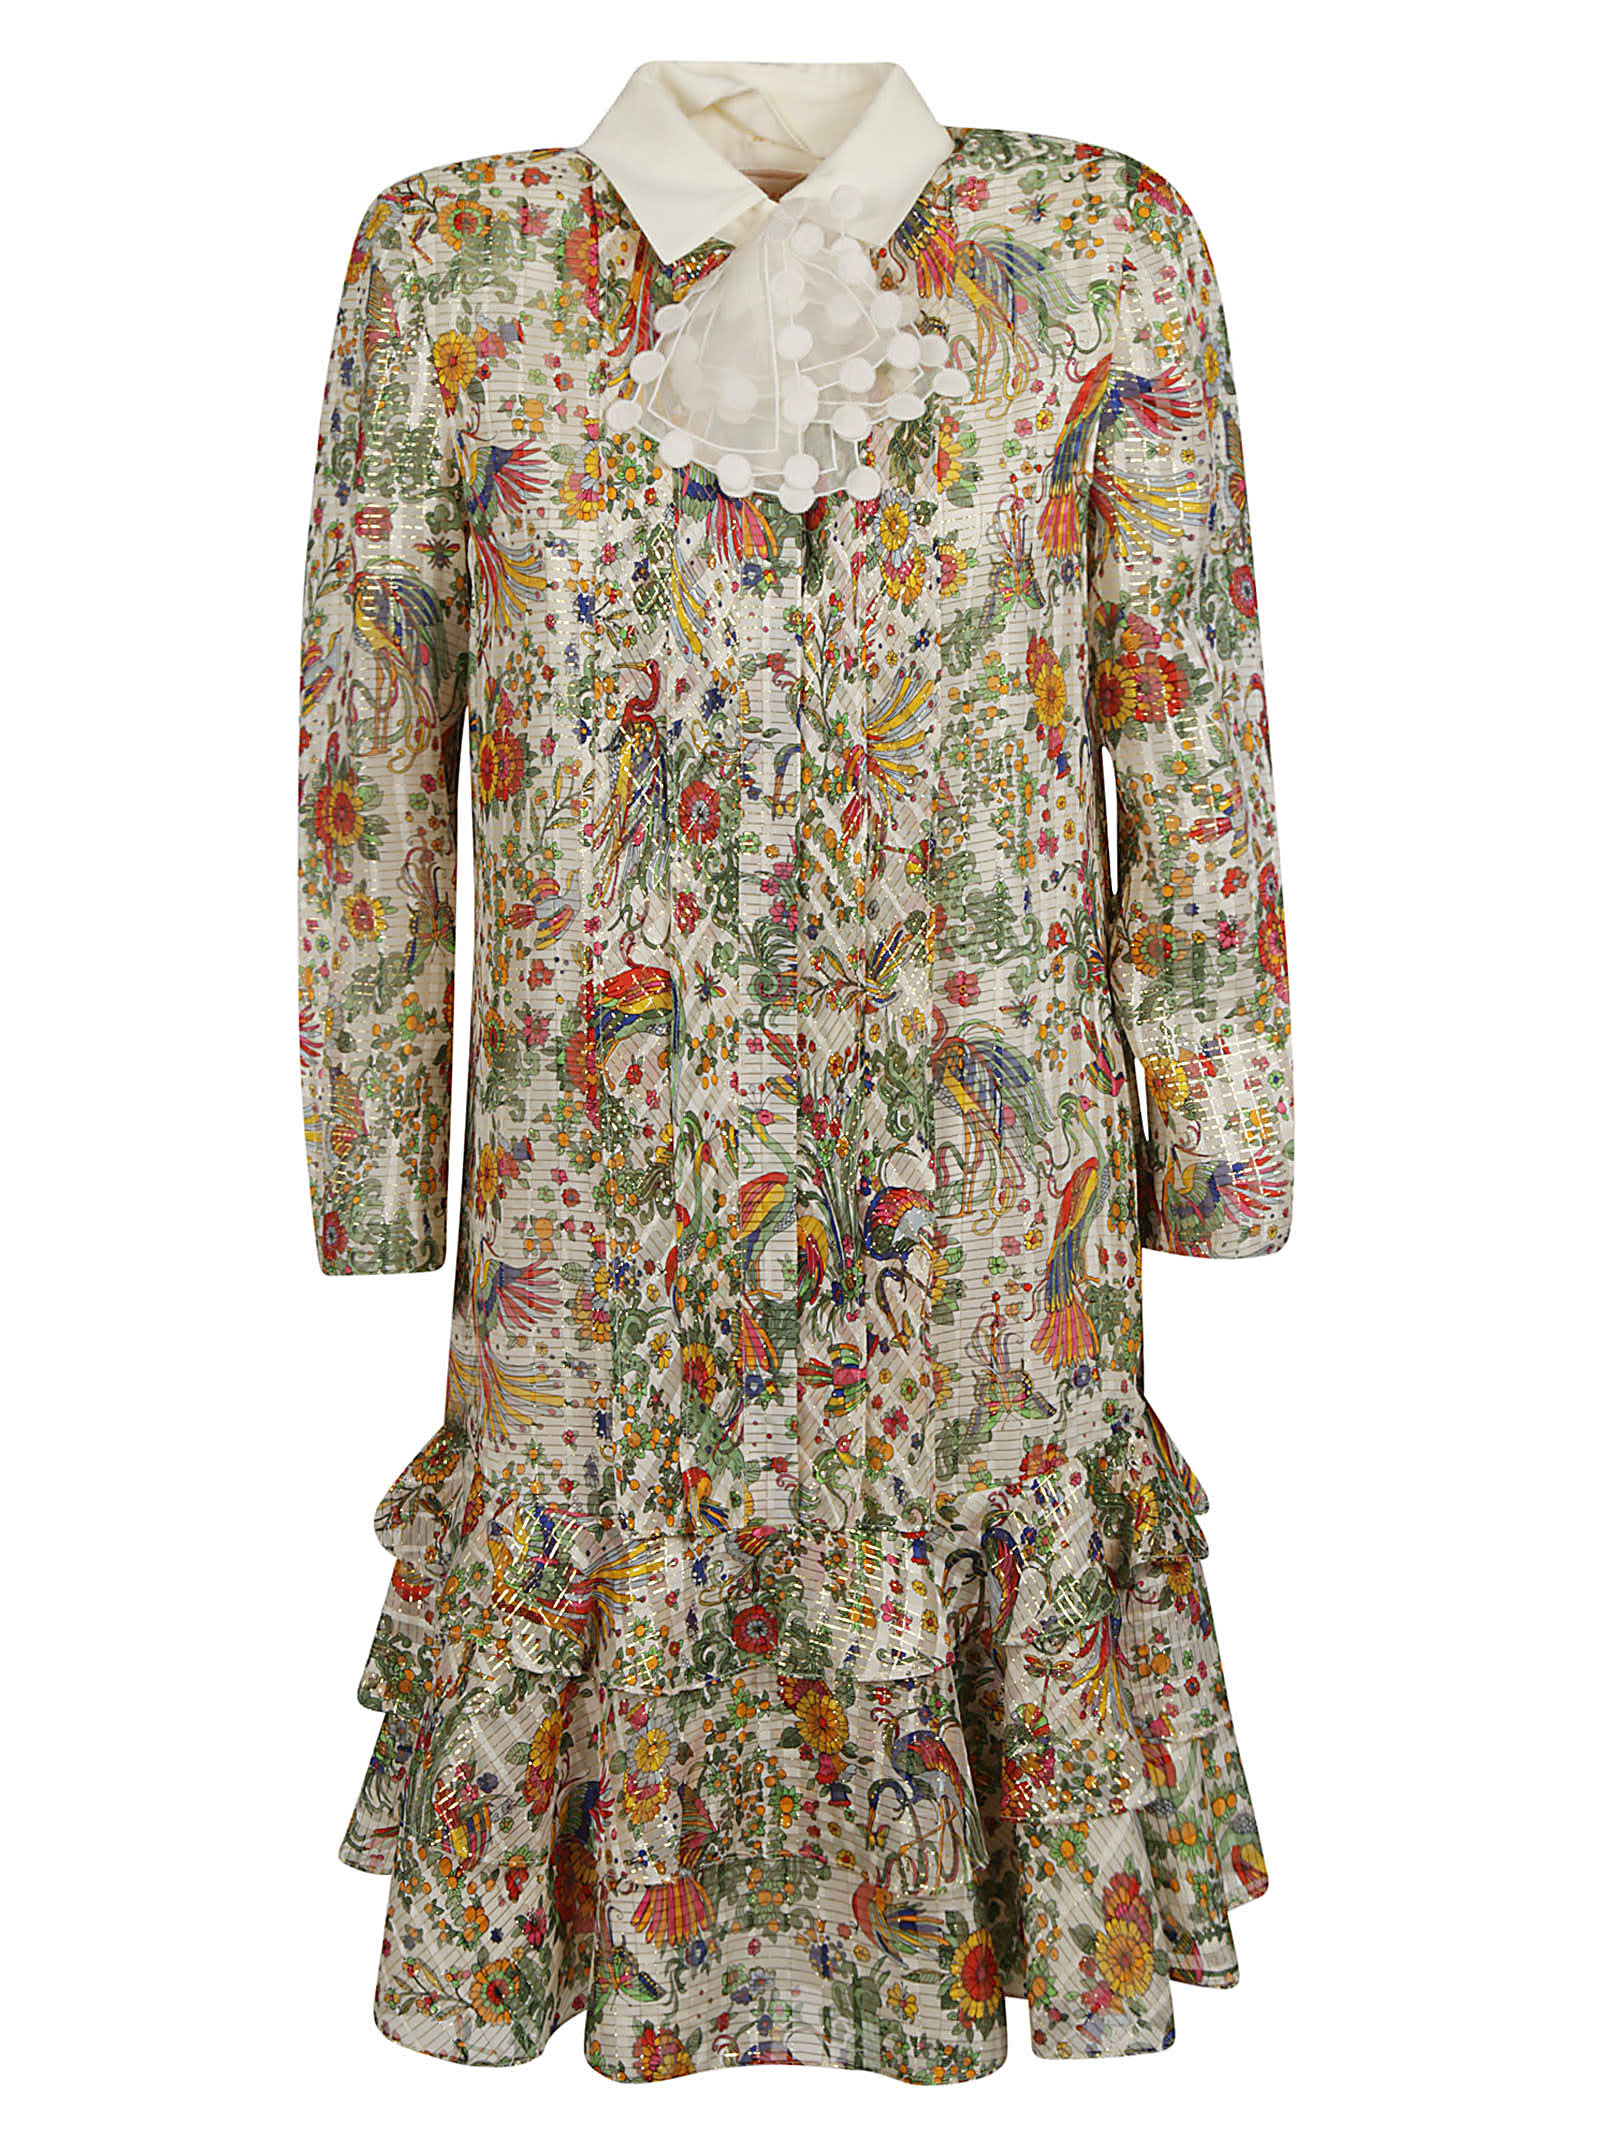 Buy Tory Burch Printed All-over Mid-length Dress online, shop Tory Burch with free shipping